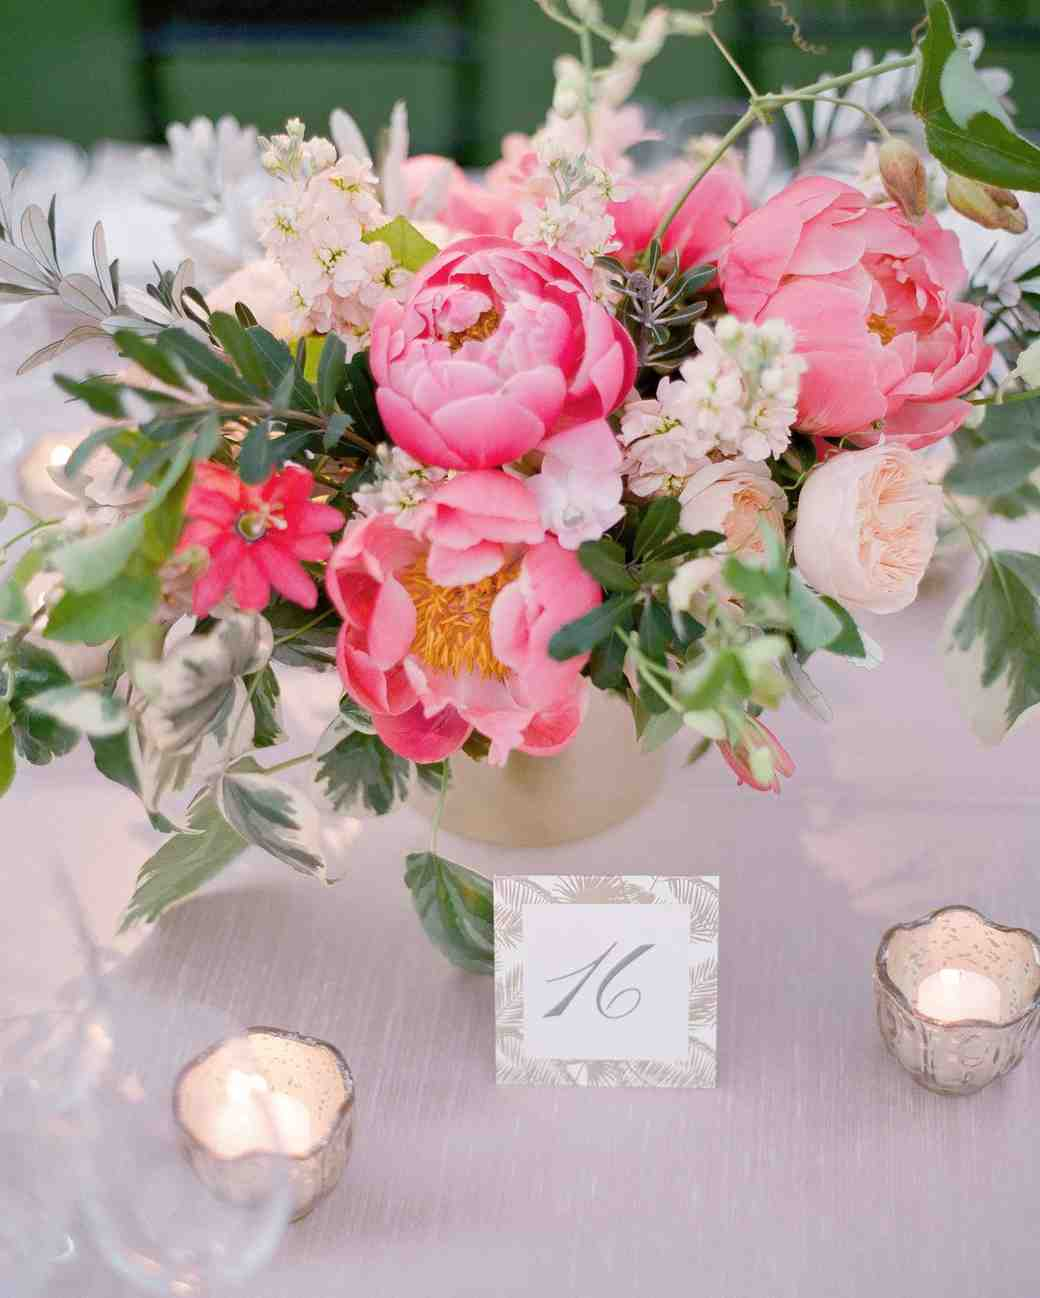 Ideas For Outdoor Wedding Reception Tables: A Casual, Outdoor Wedding In Palm Springs With A Black-Tie